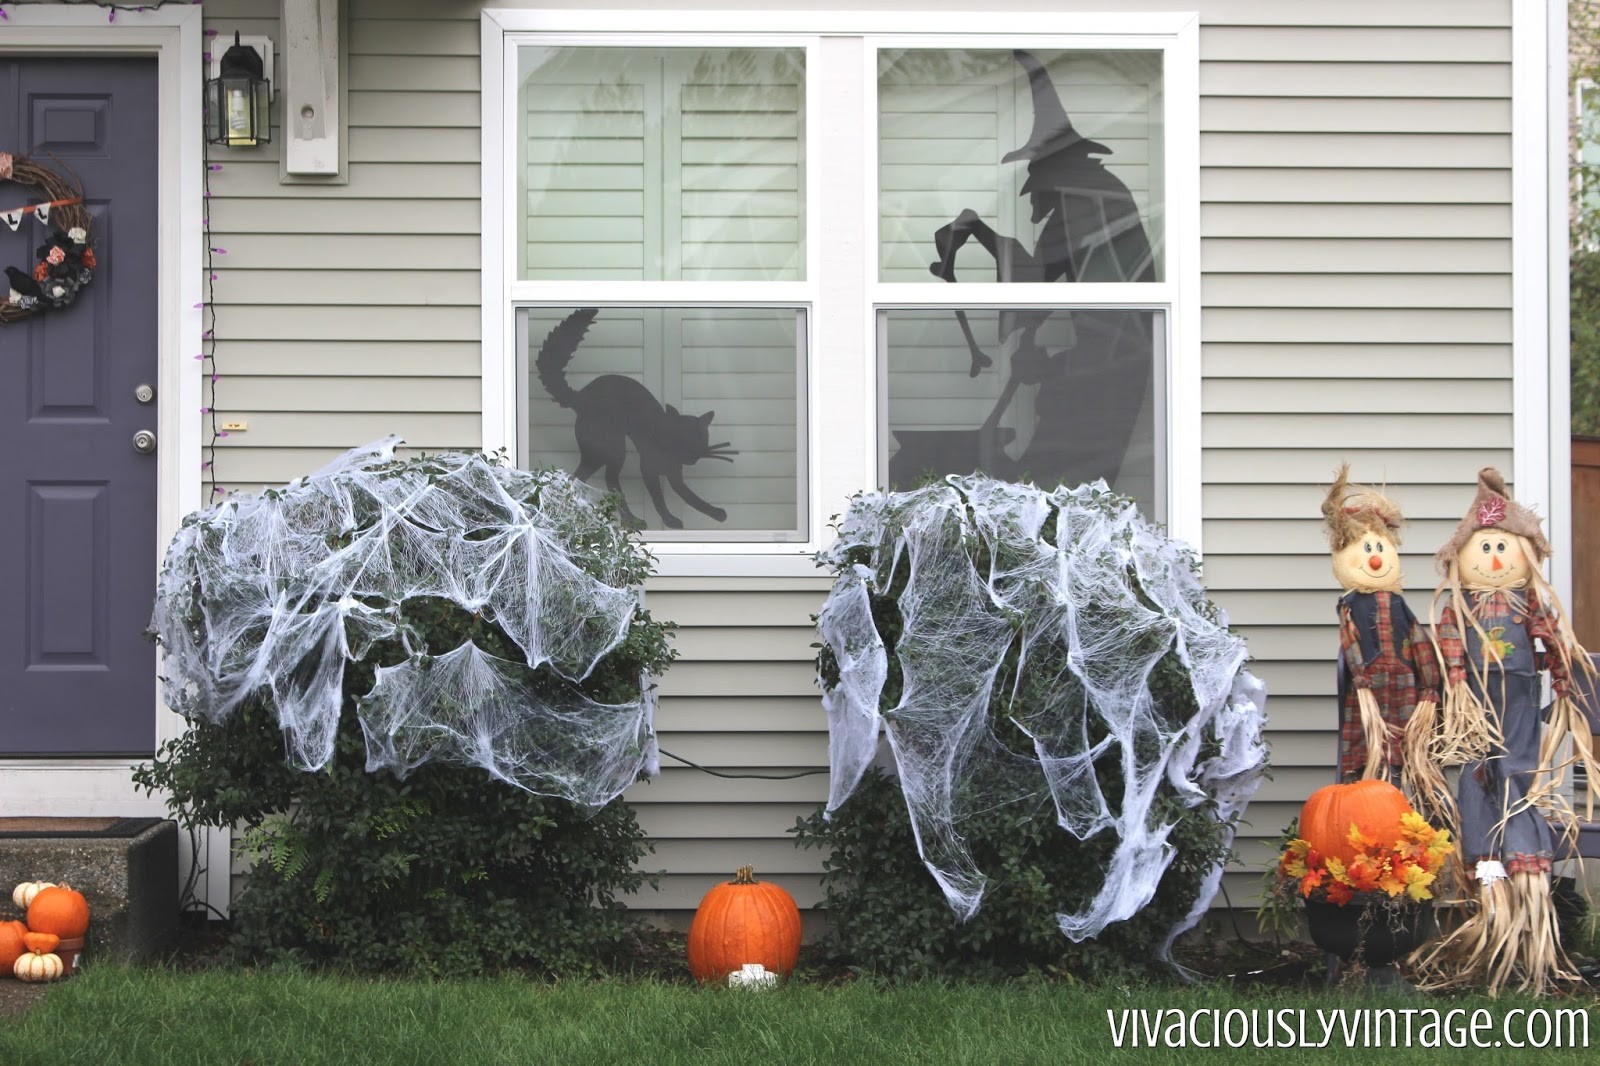 Ansley Designs: DIY Creepy Halloween Silhouettes with Templates!